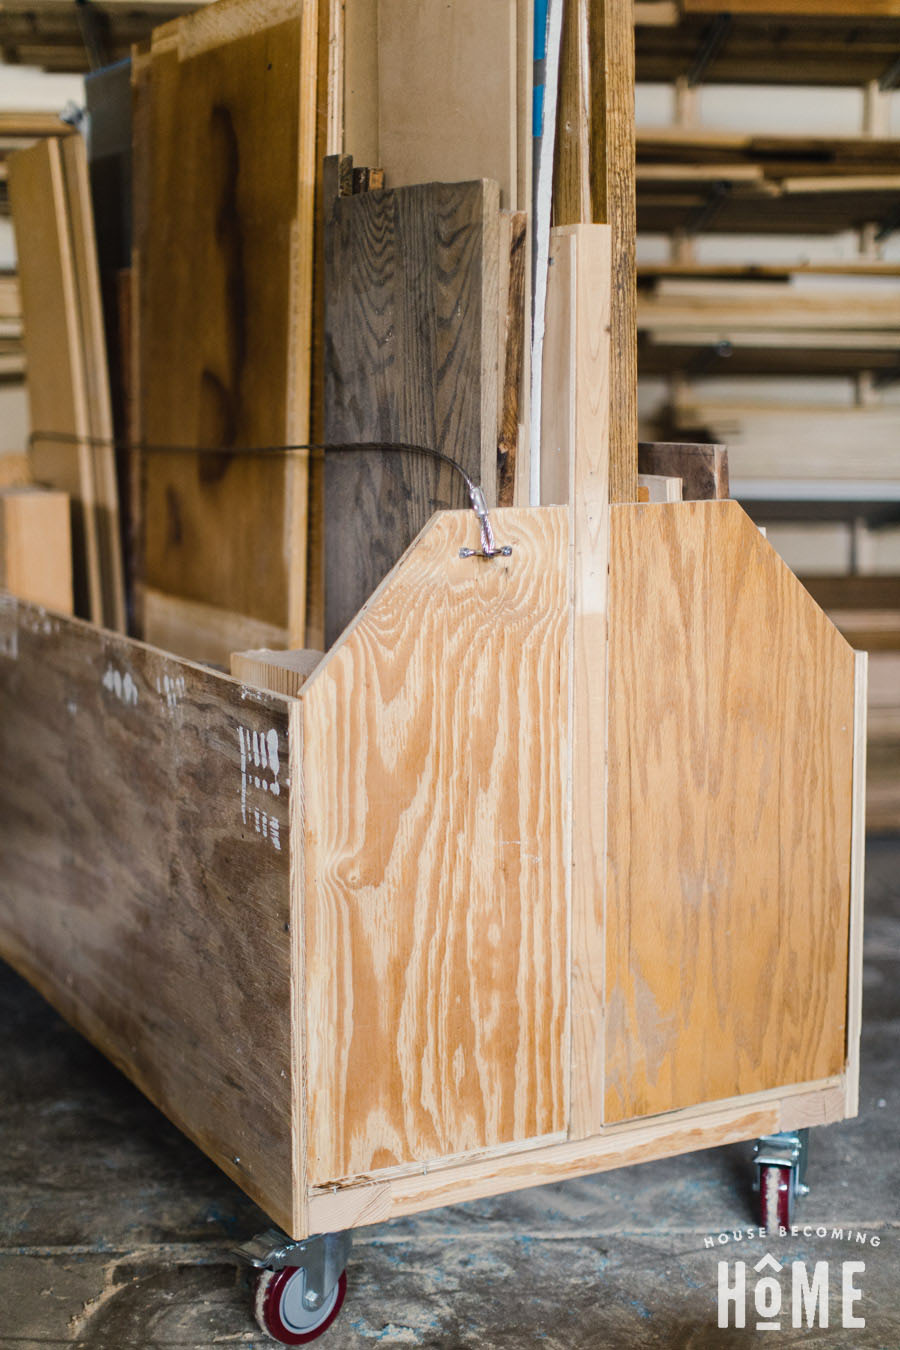 An affordable, simple, easy-to-build mobile cart to store and organize scrap lumber and plywood